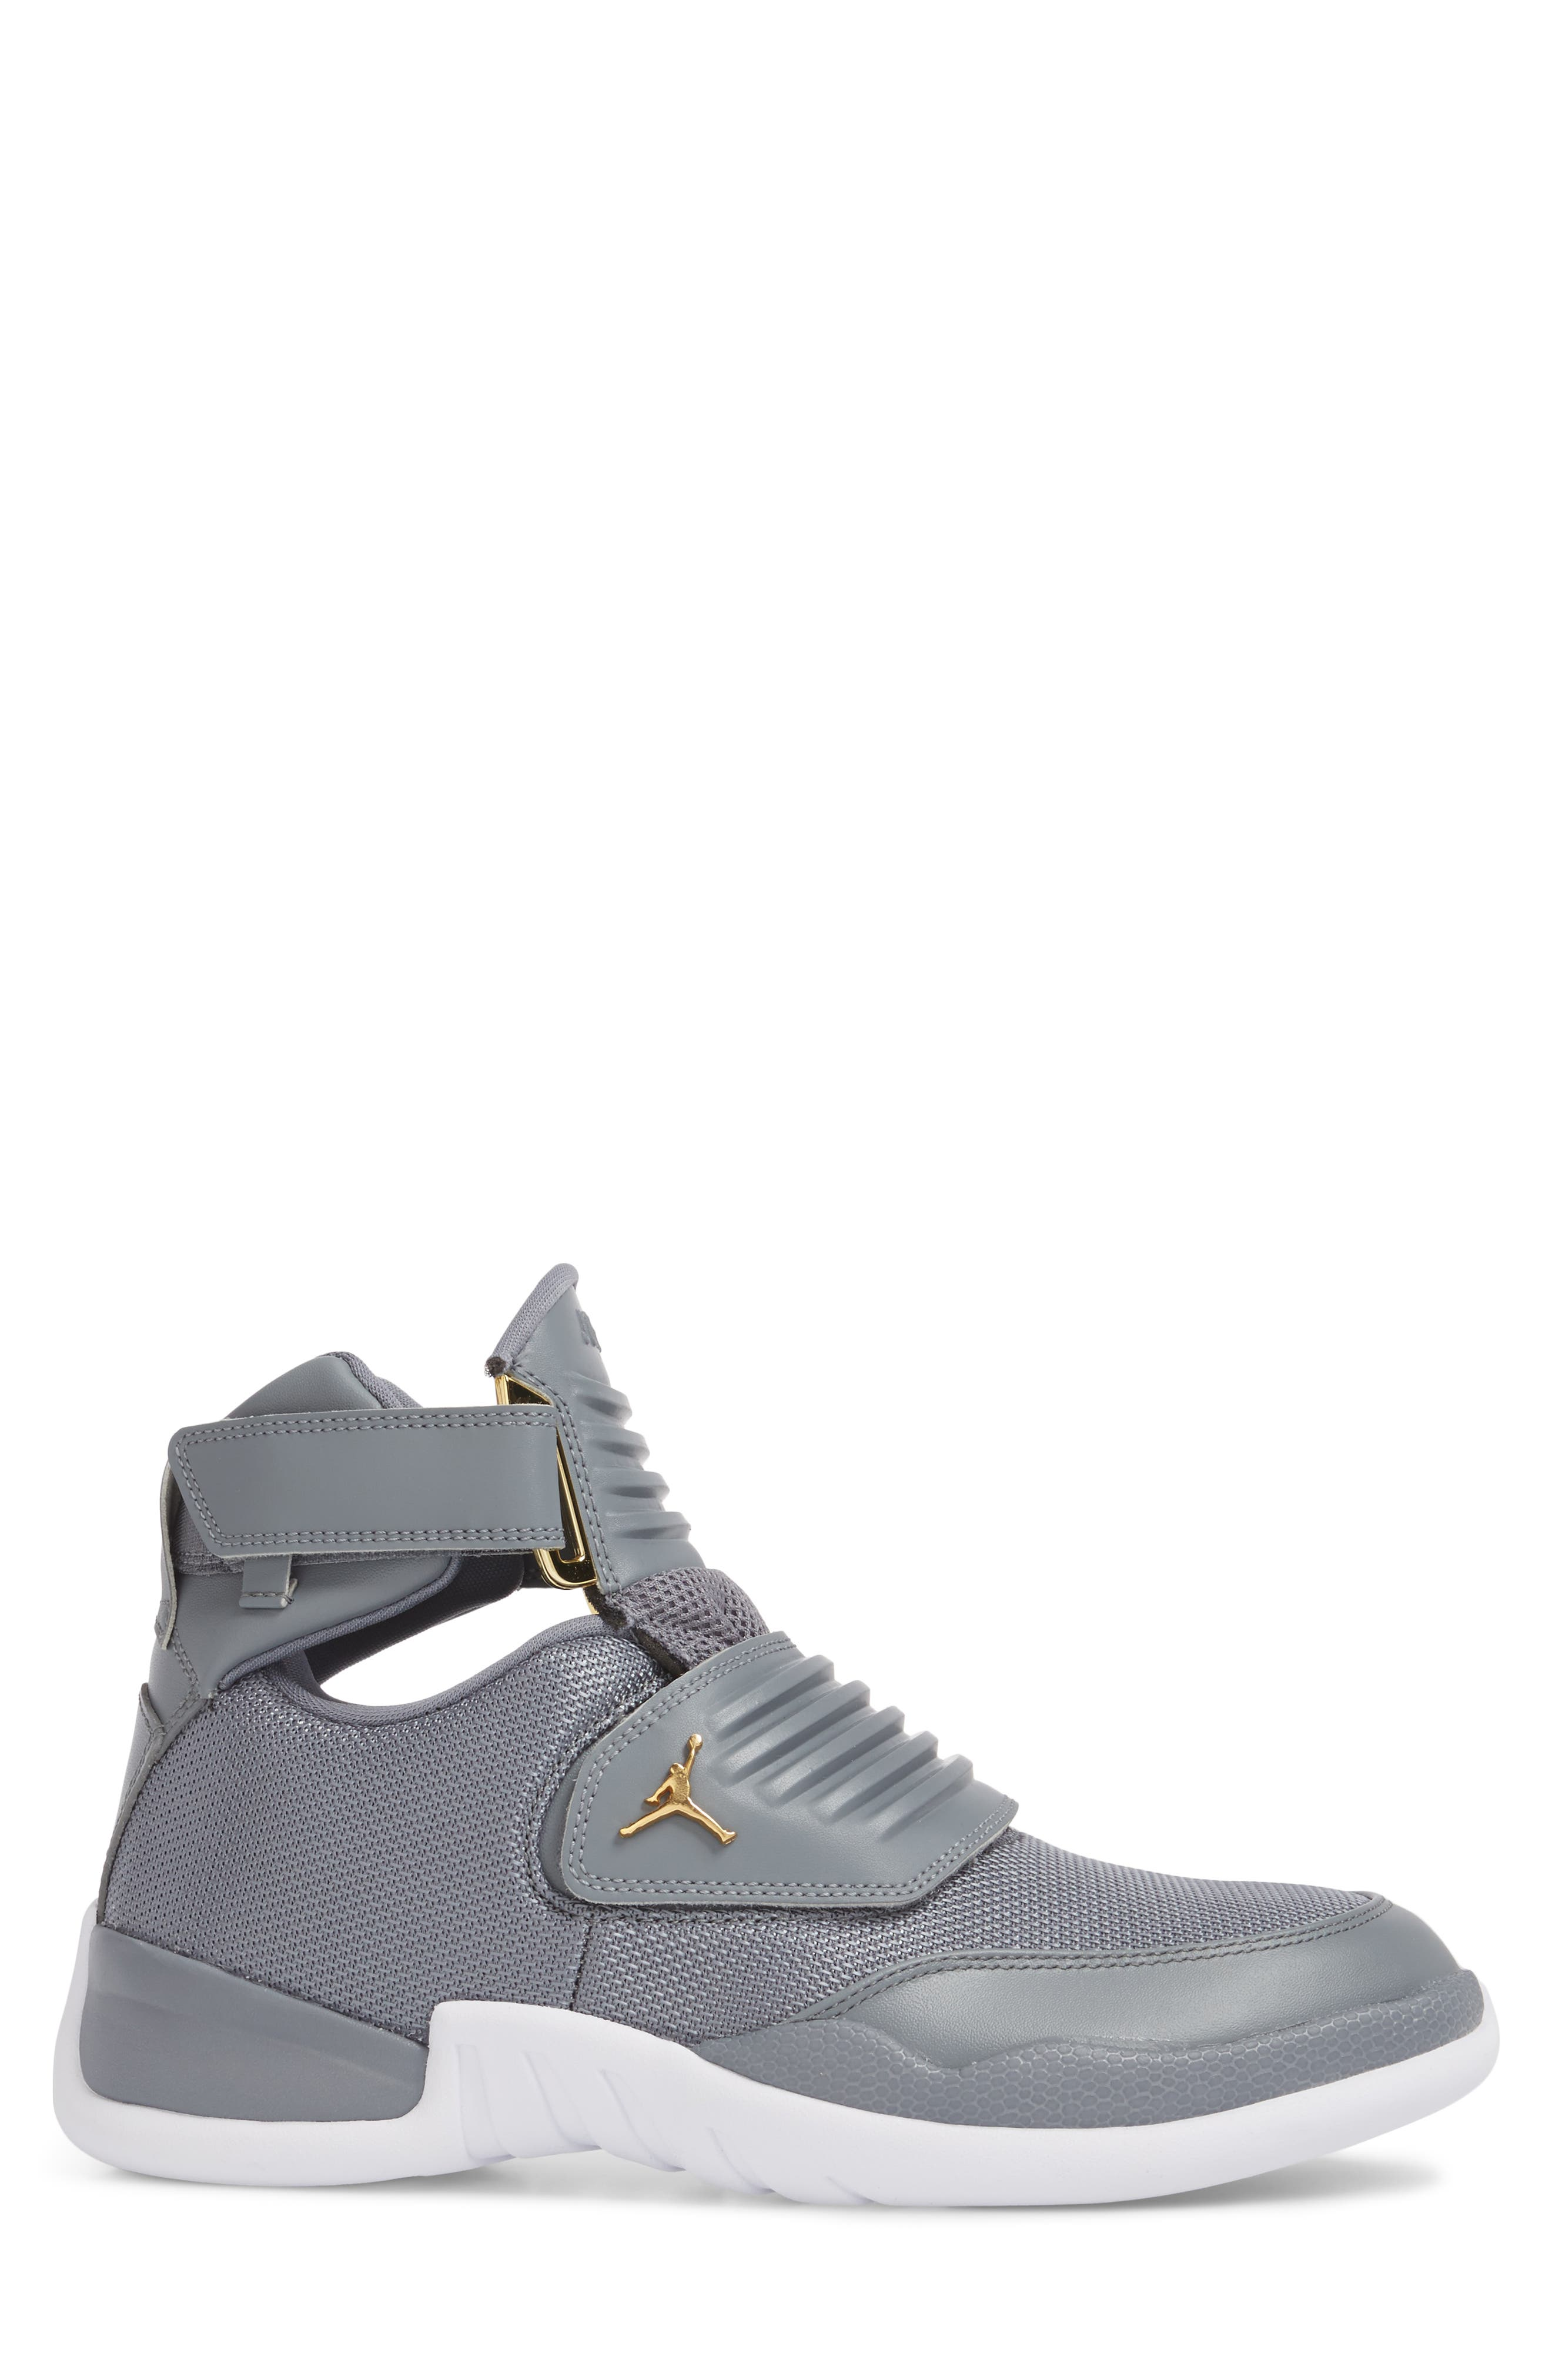 Alternate Image 3  - Nike Jordan Generation High Top Sneaker (Men)